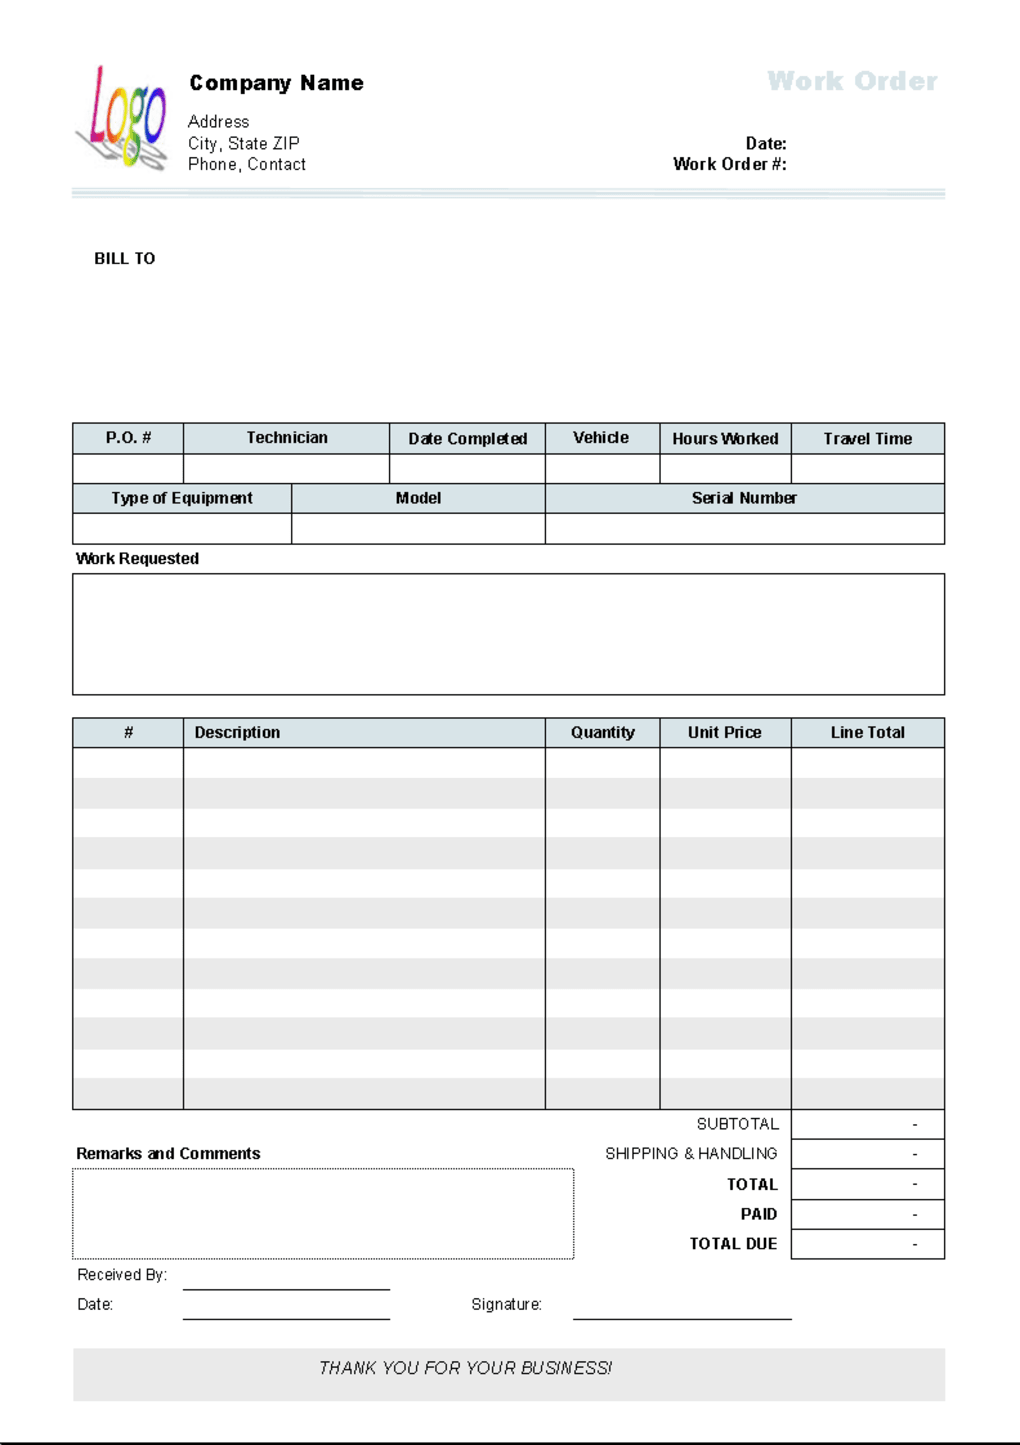 Work Order Template - Descargar